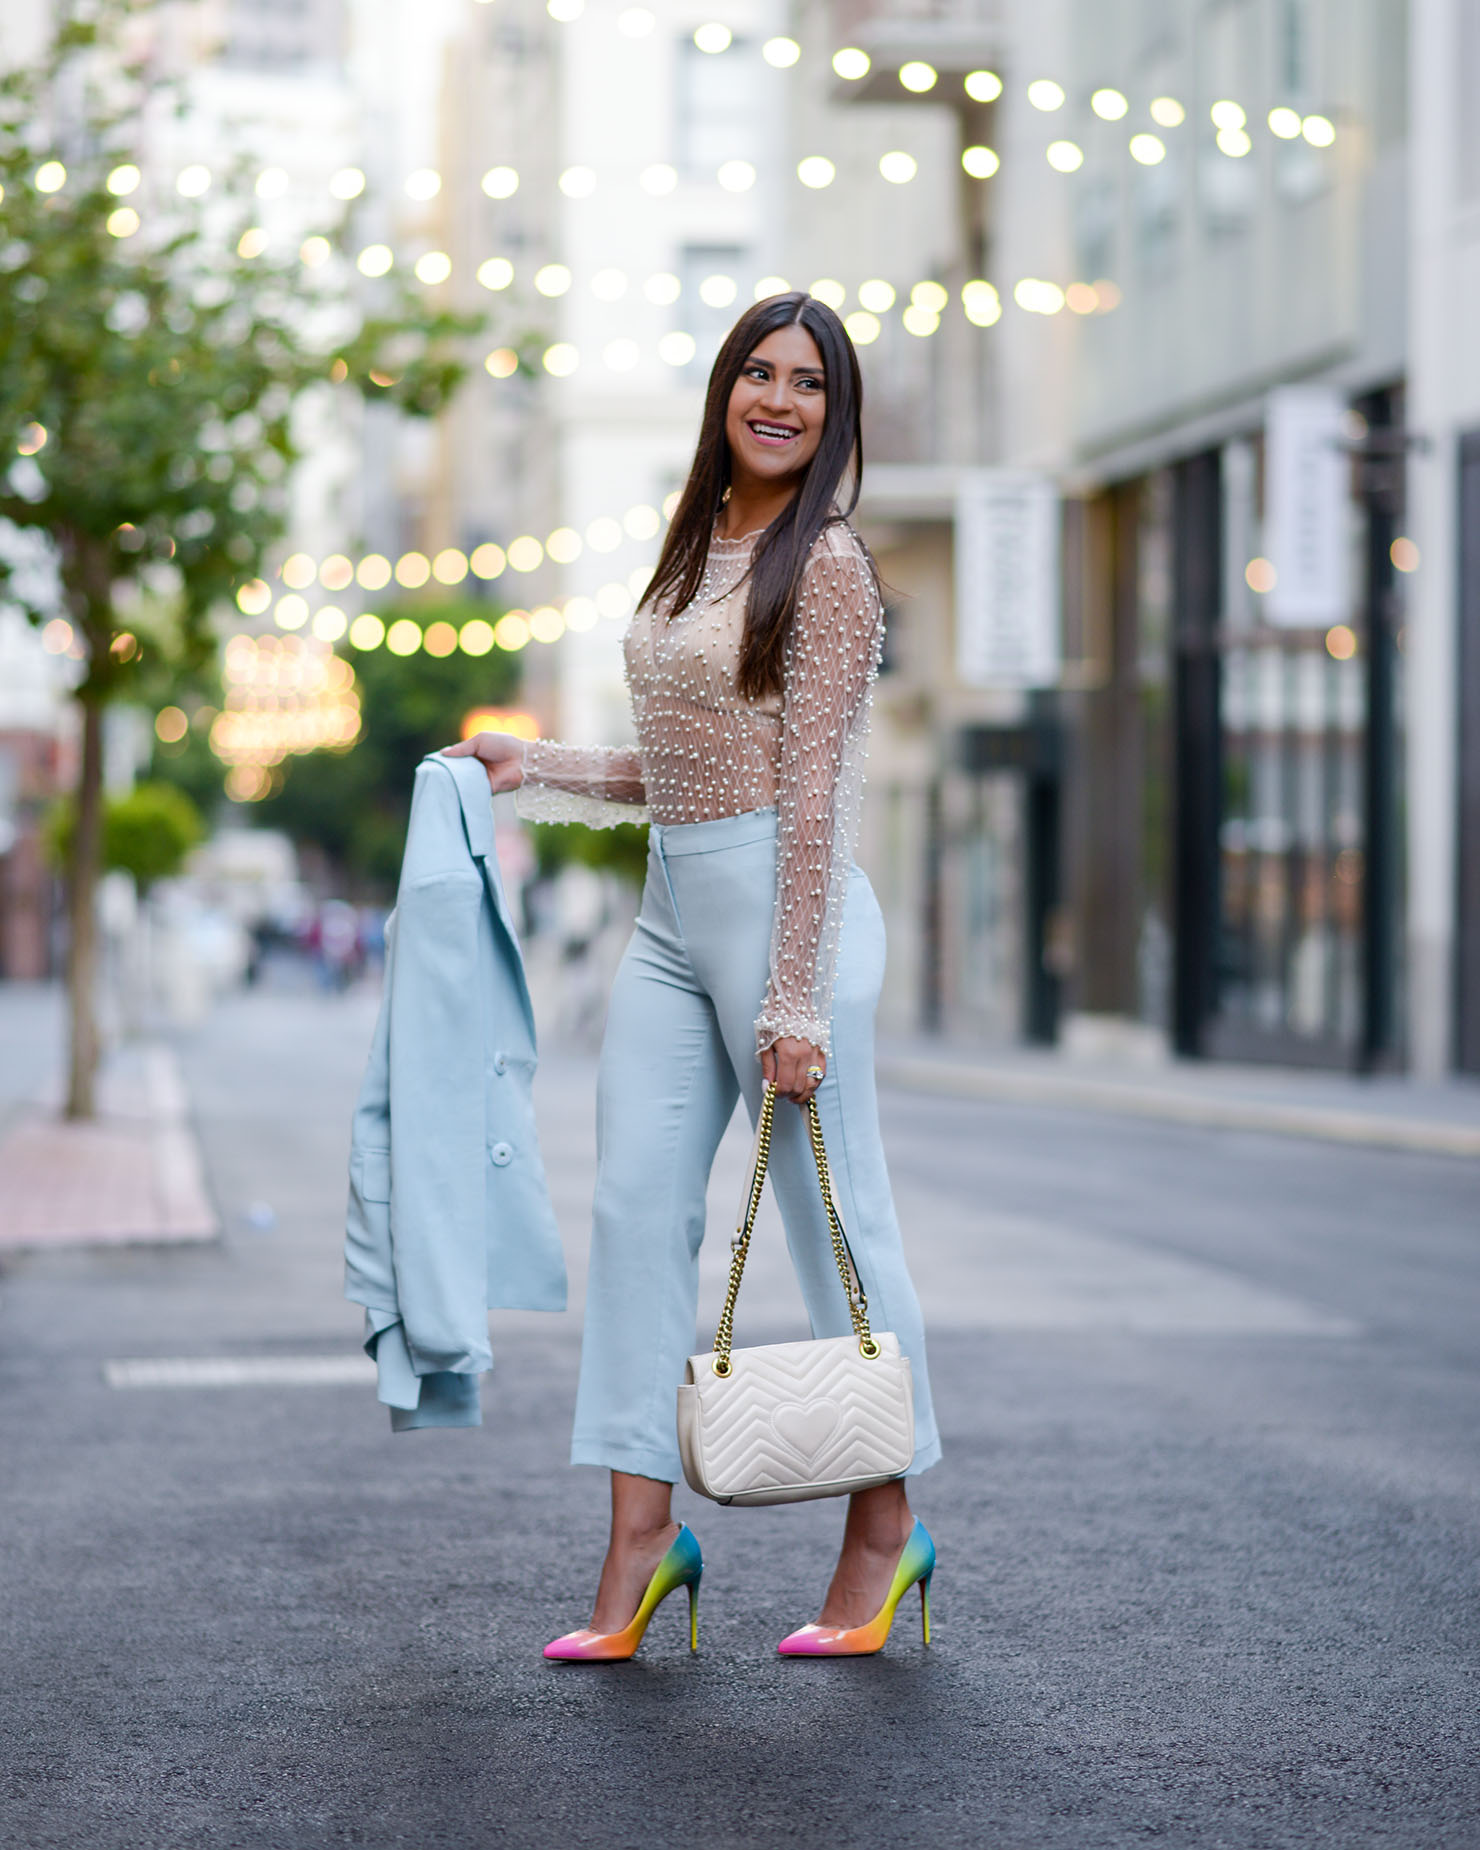 online retailer 5ceea 60819 Little Blue Suit and Rainbow Louboutins | Kelsey Kaplan Fashion